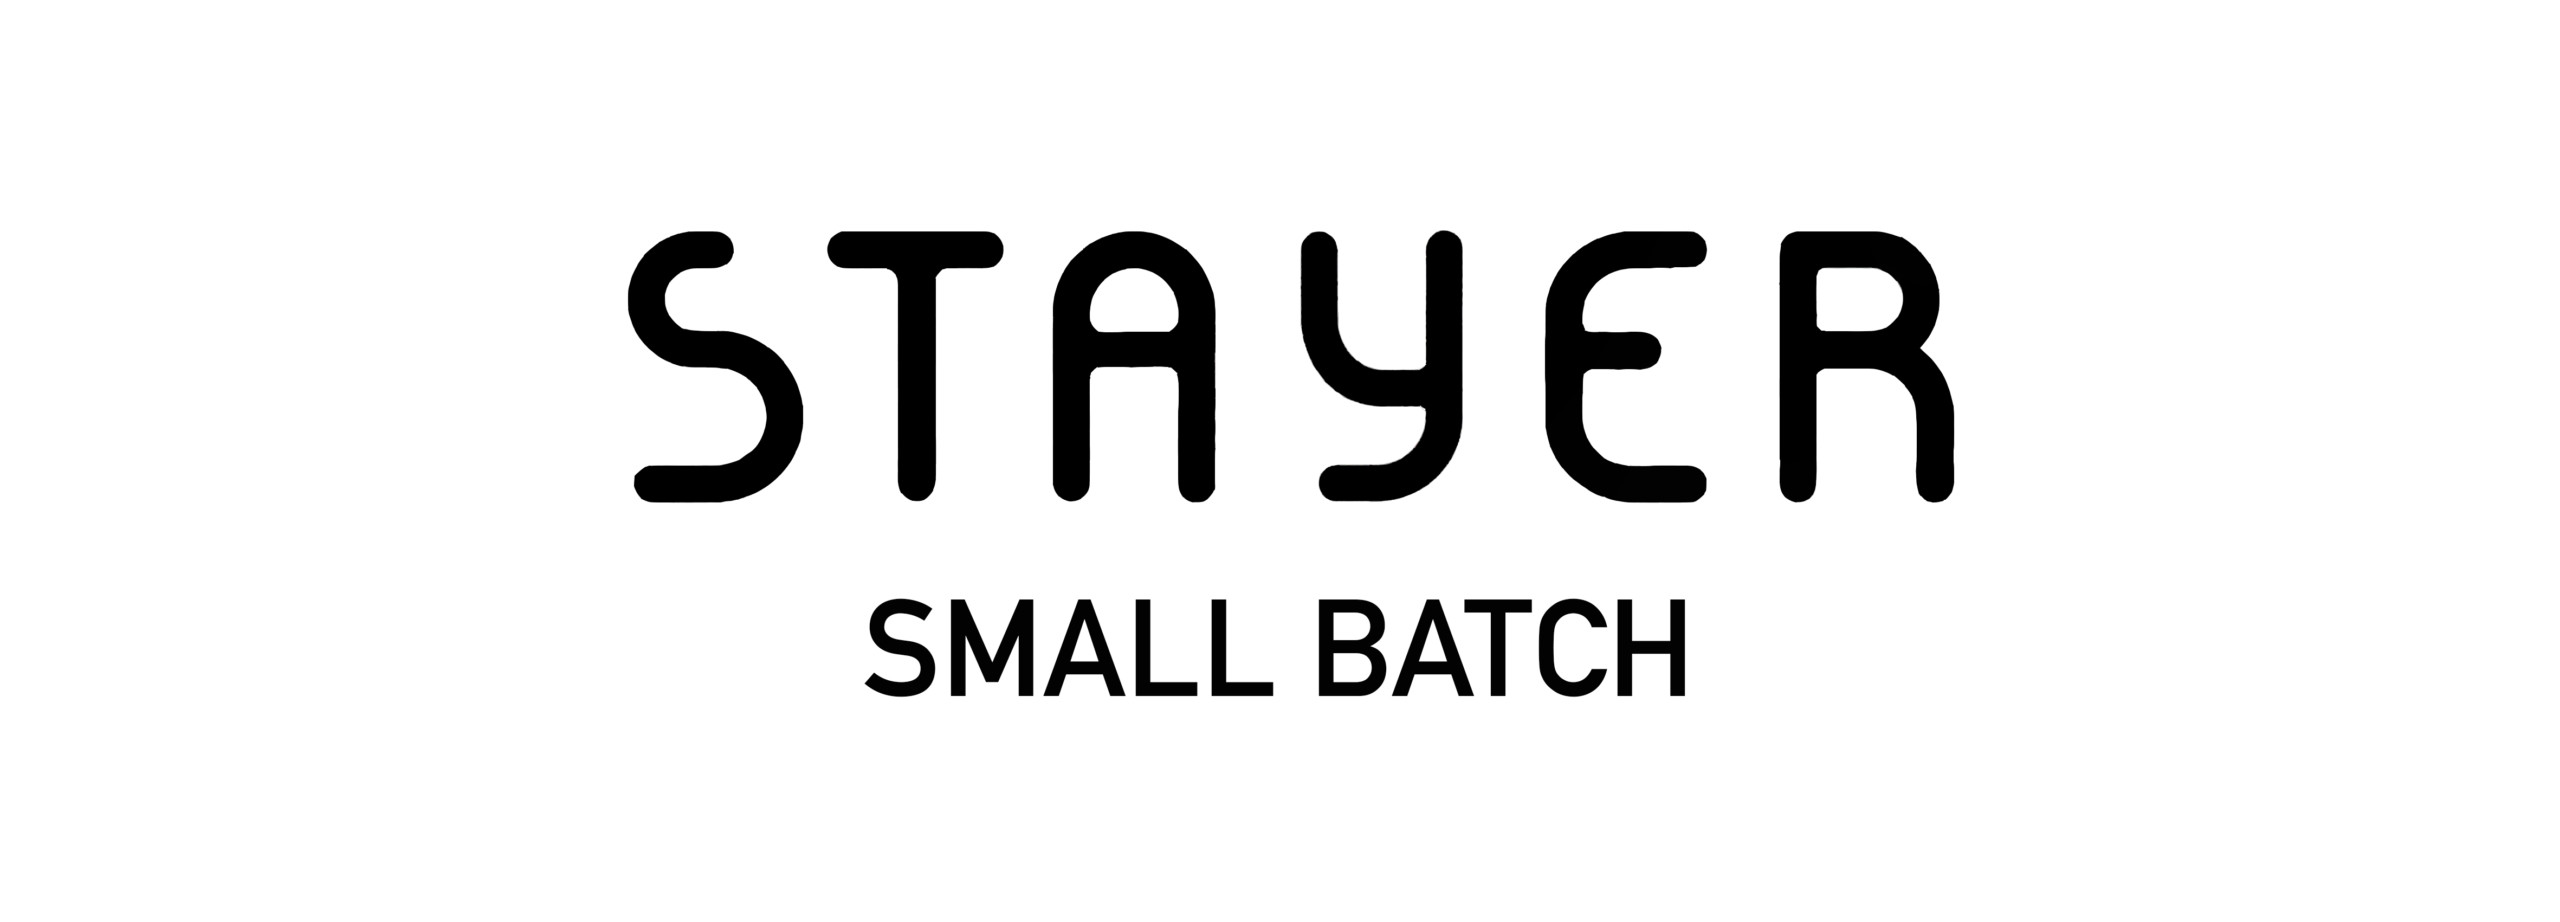 Stayer cycles Small Batch